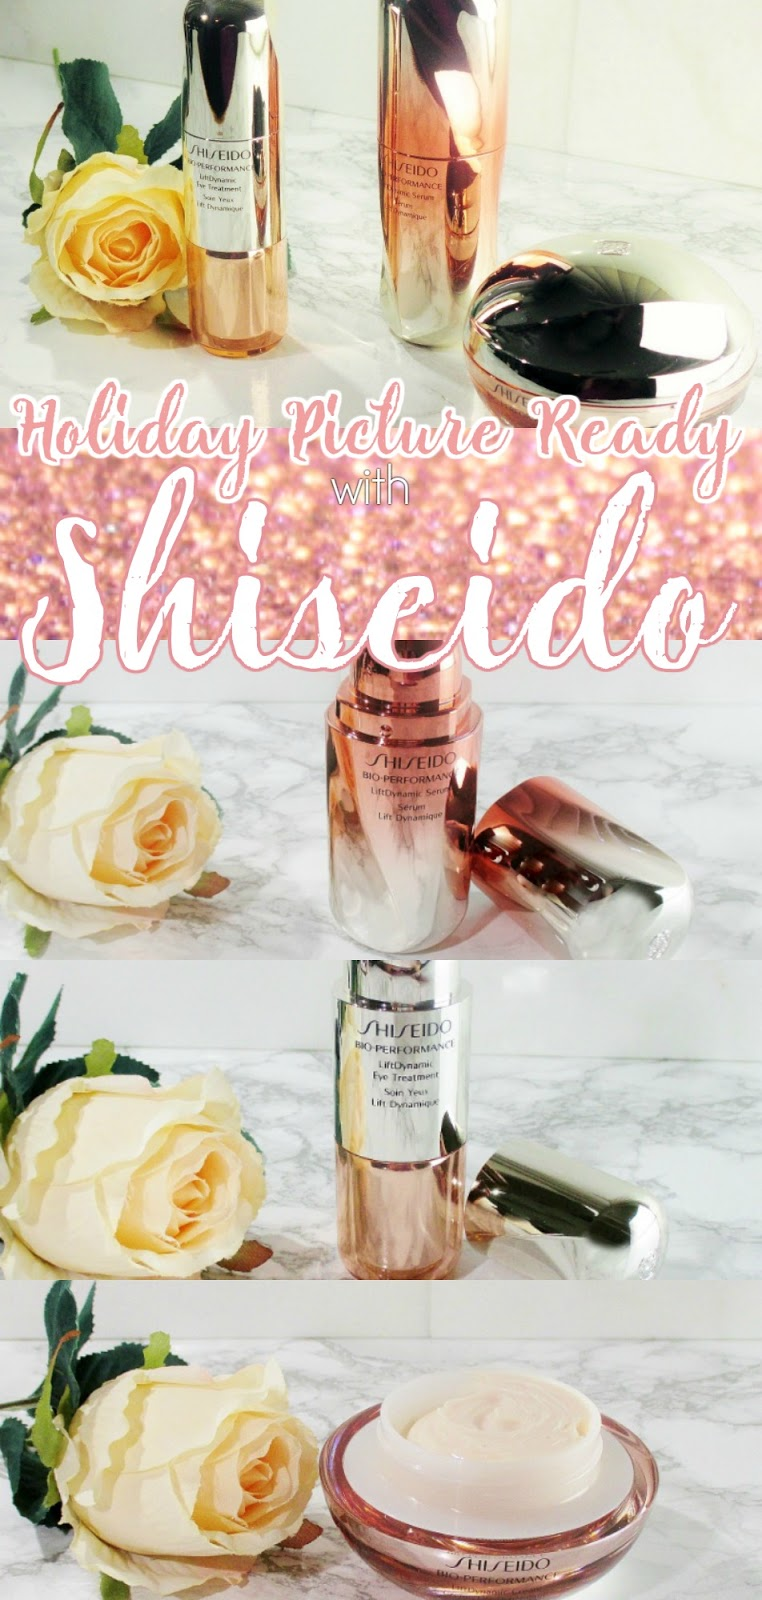 shiseido-holiday-picture-perfect